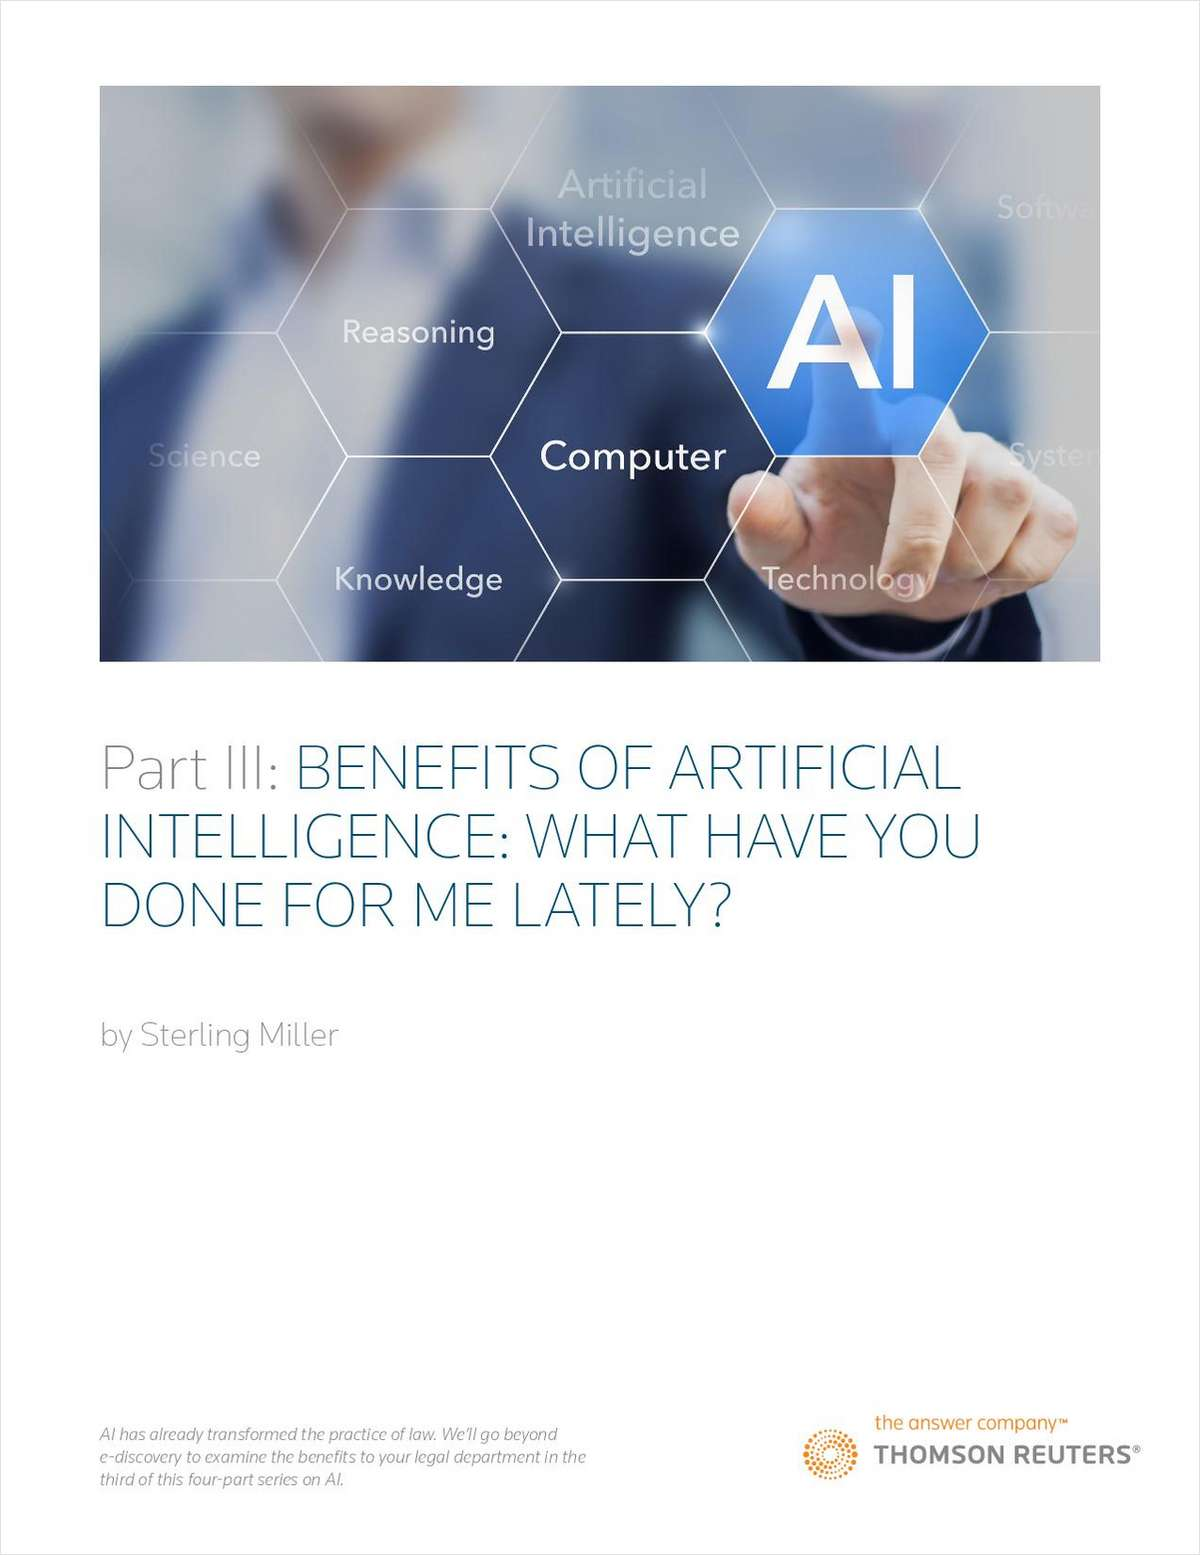 What Can AI Do For Your Legal Department?